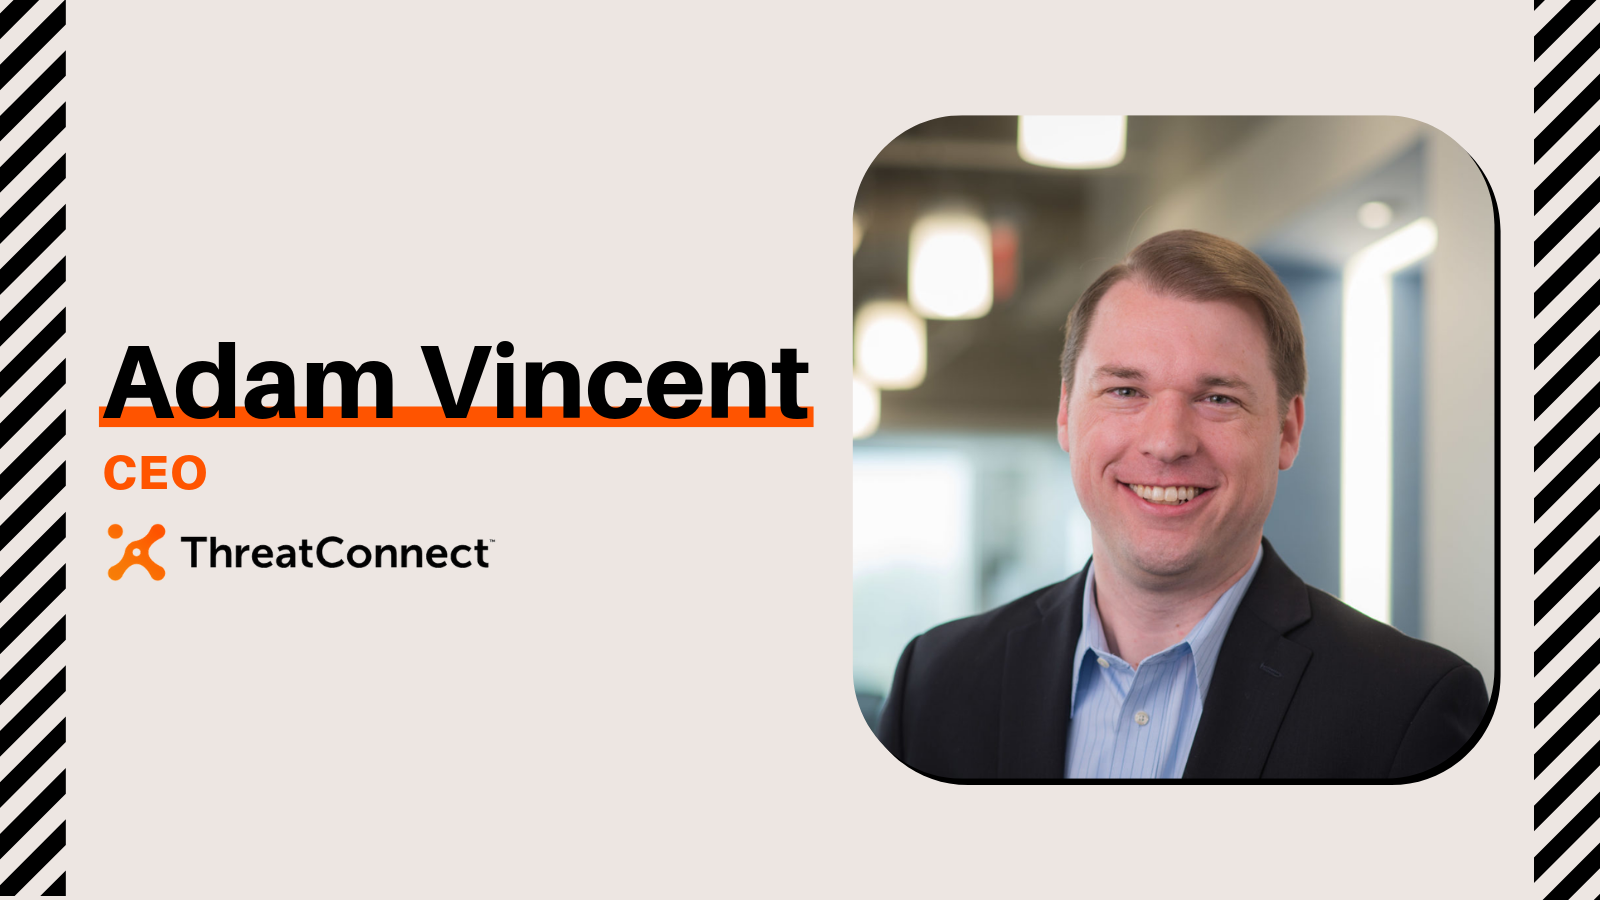 Adam Vincent, ThreatConnect Co-Founder & CEO: IoT Needs Regulation Because Our Safety Is Involved